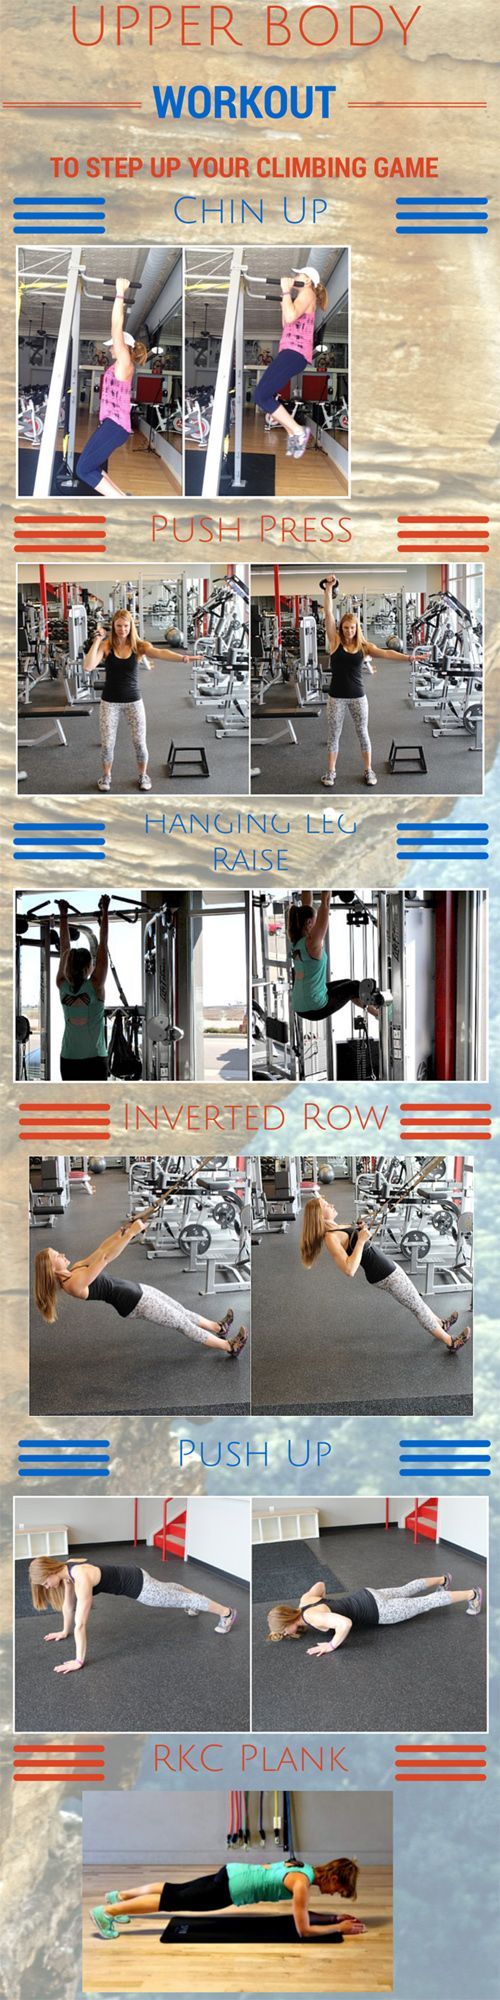 Rock It! An Upper Body Workout to Step Up Your Climbing Game   Sierra Social Hub